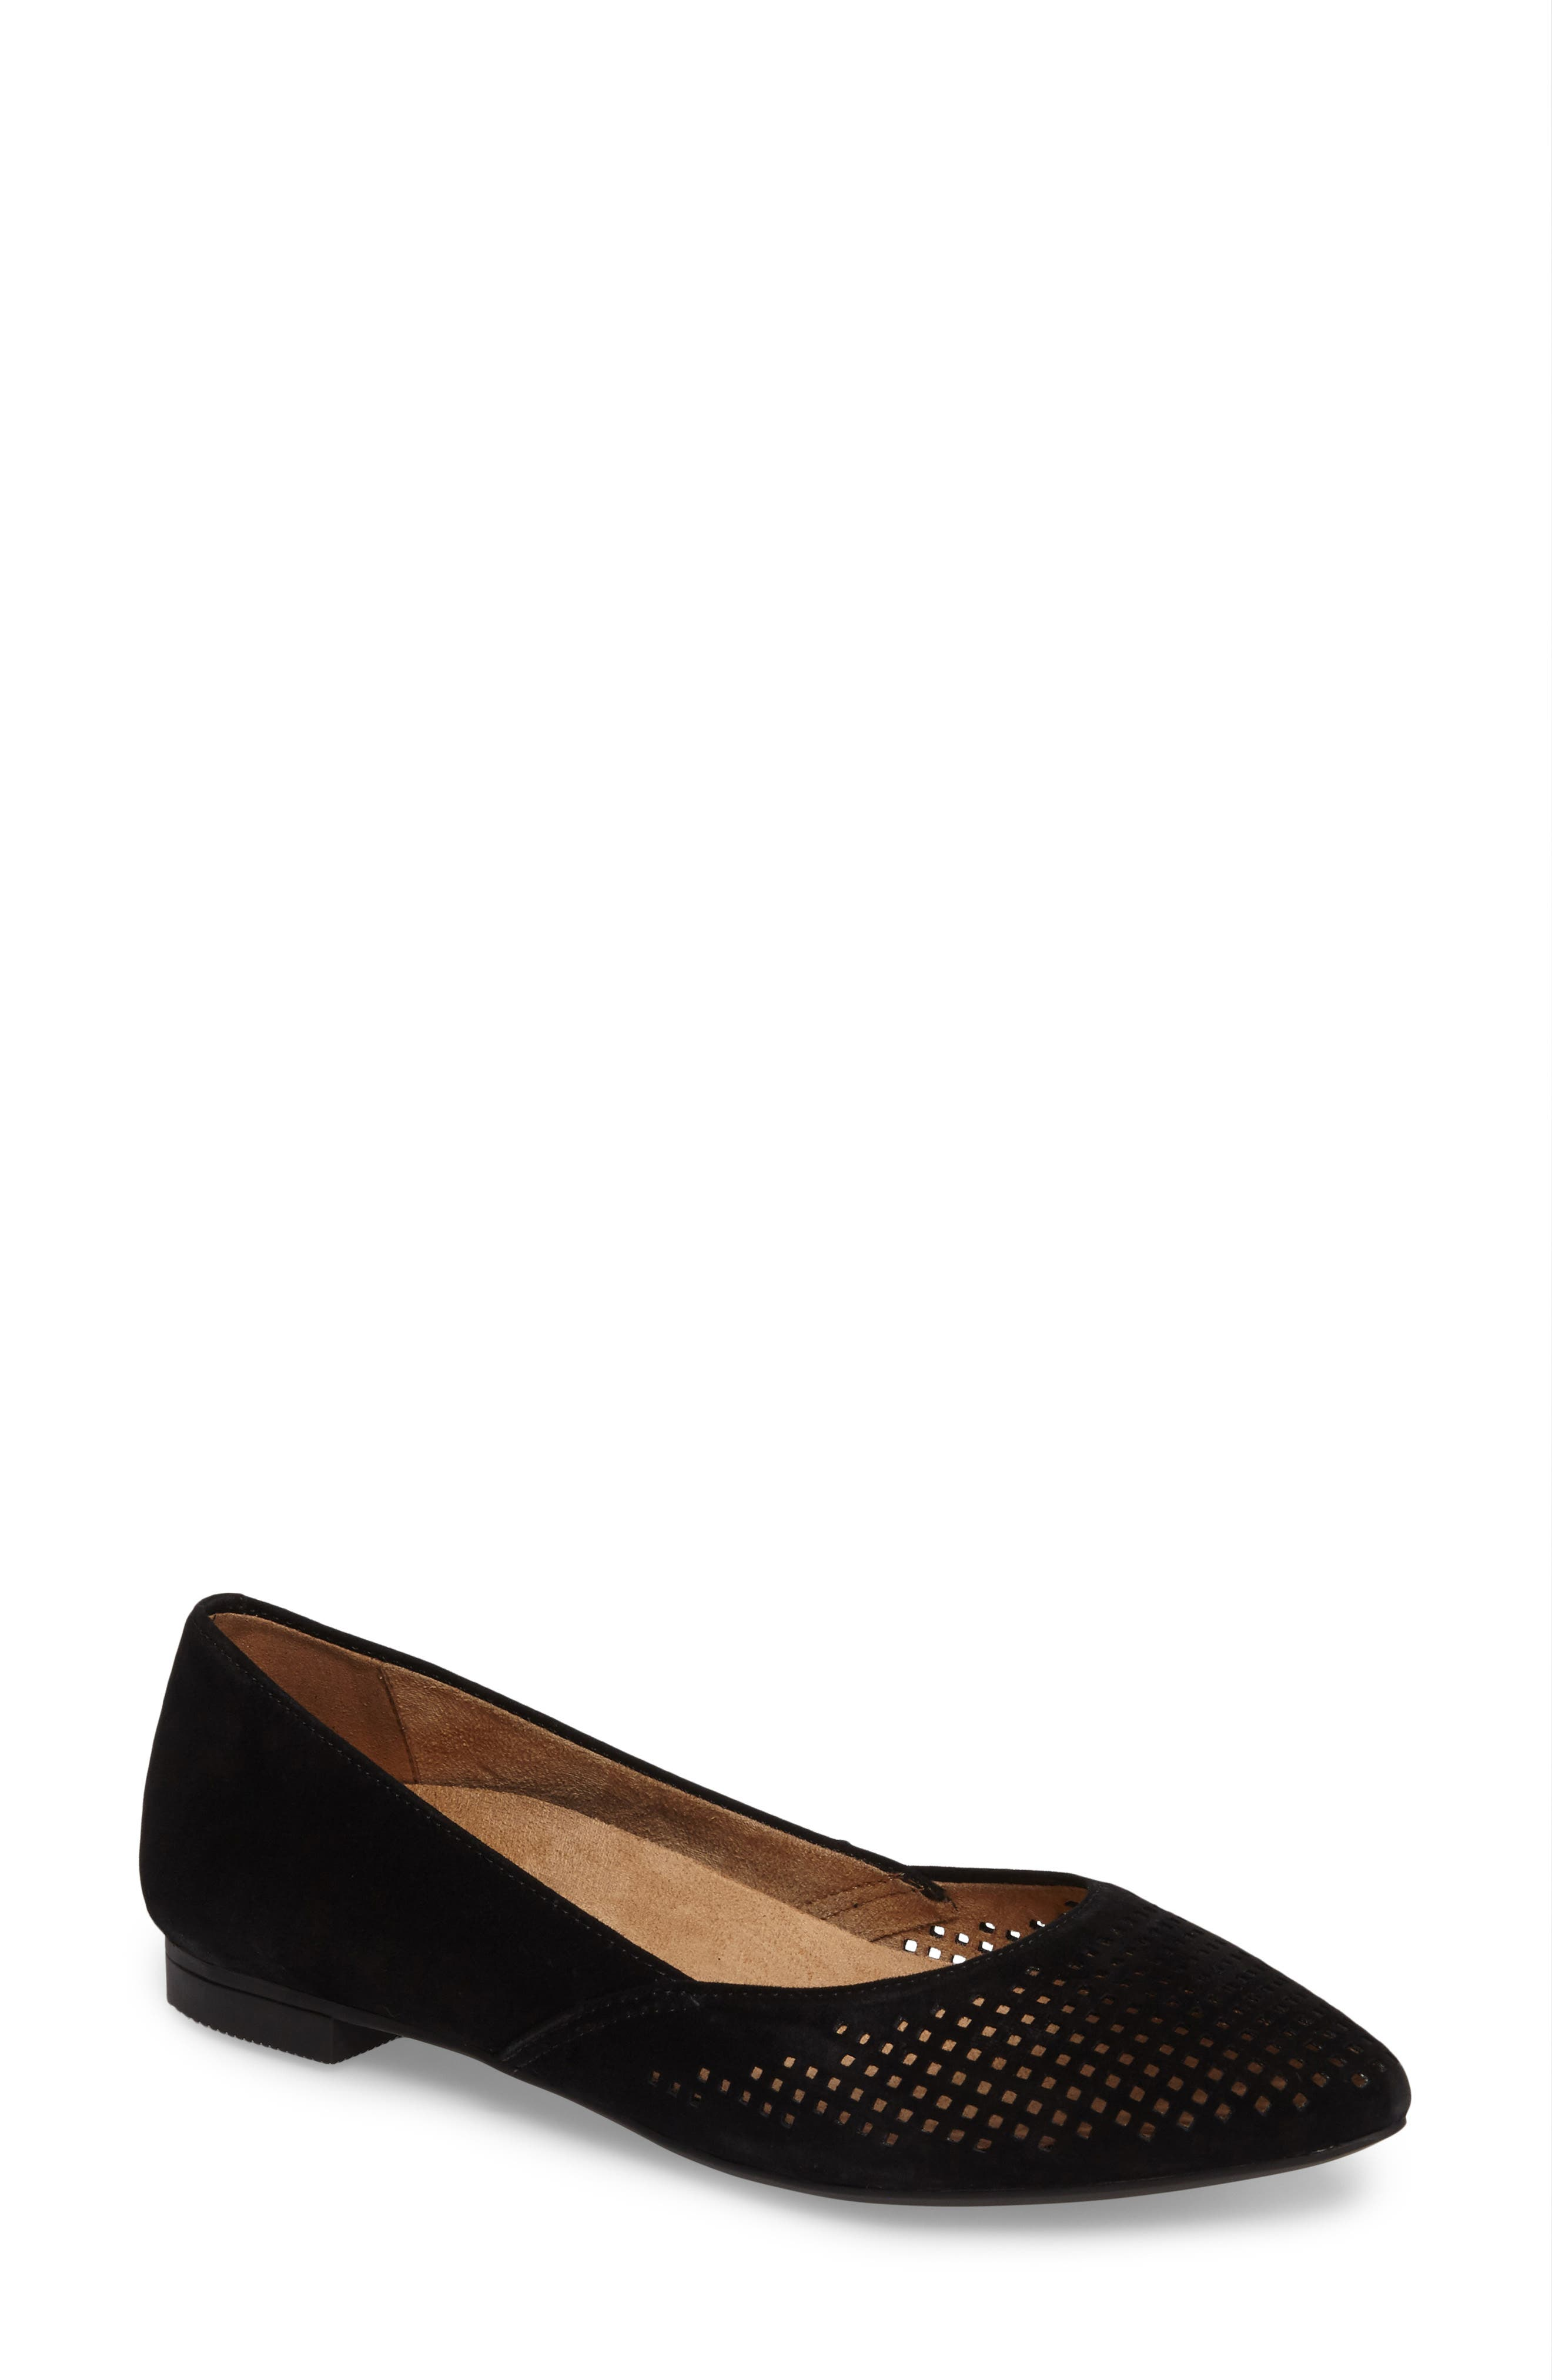 Posey Flat,                         Main,                         color, Black Suede